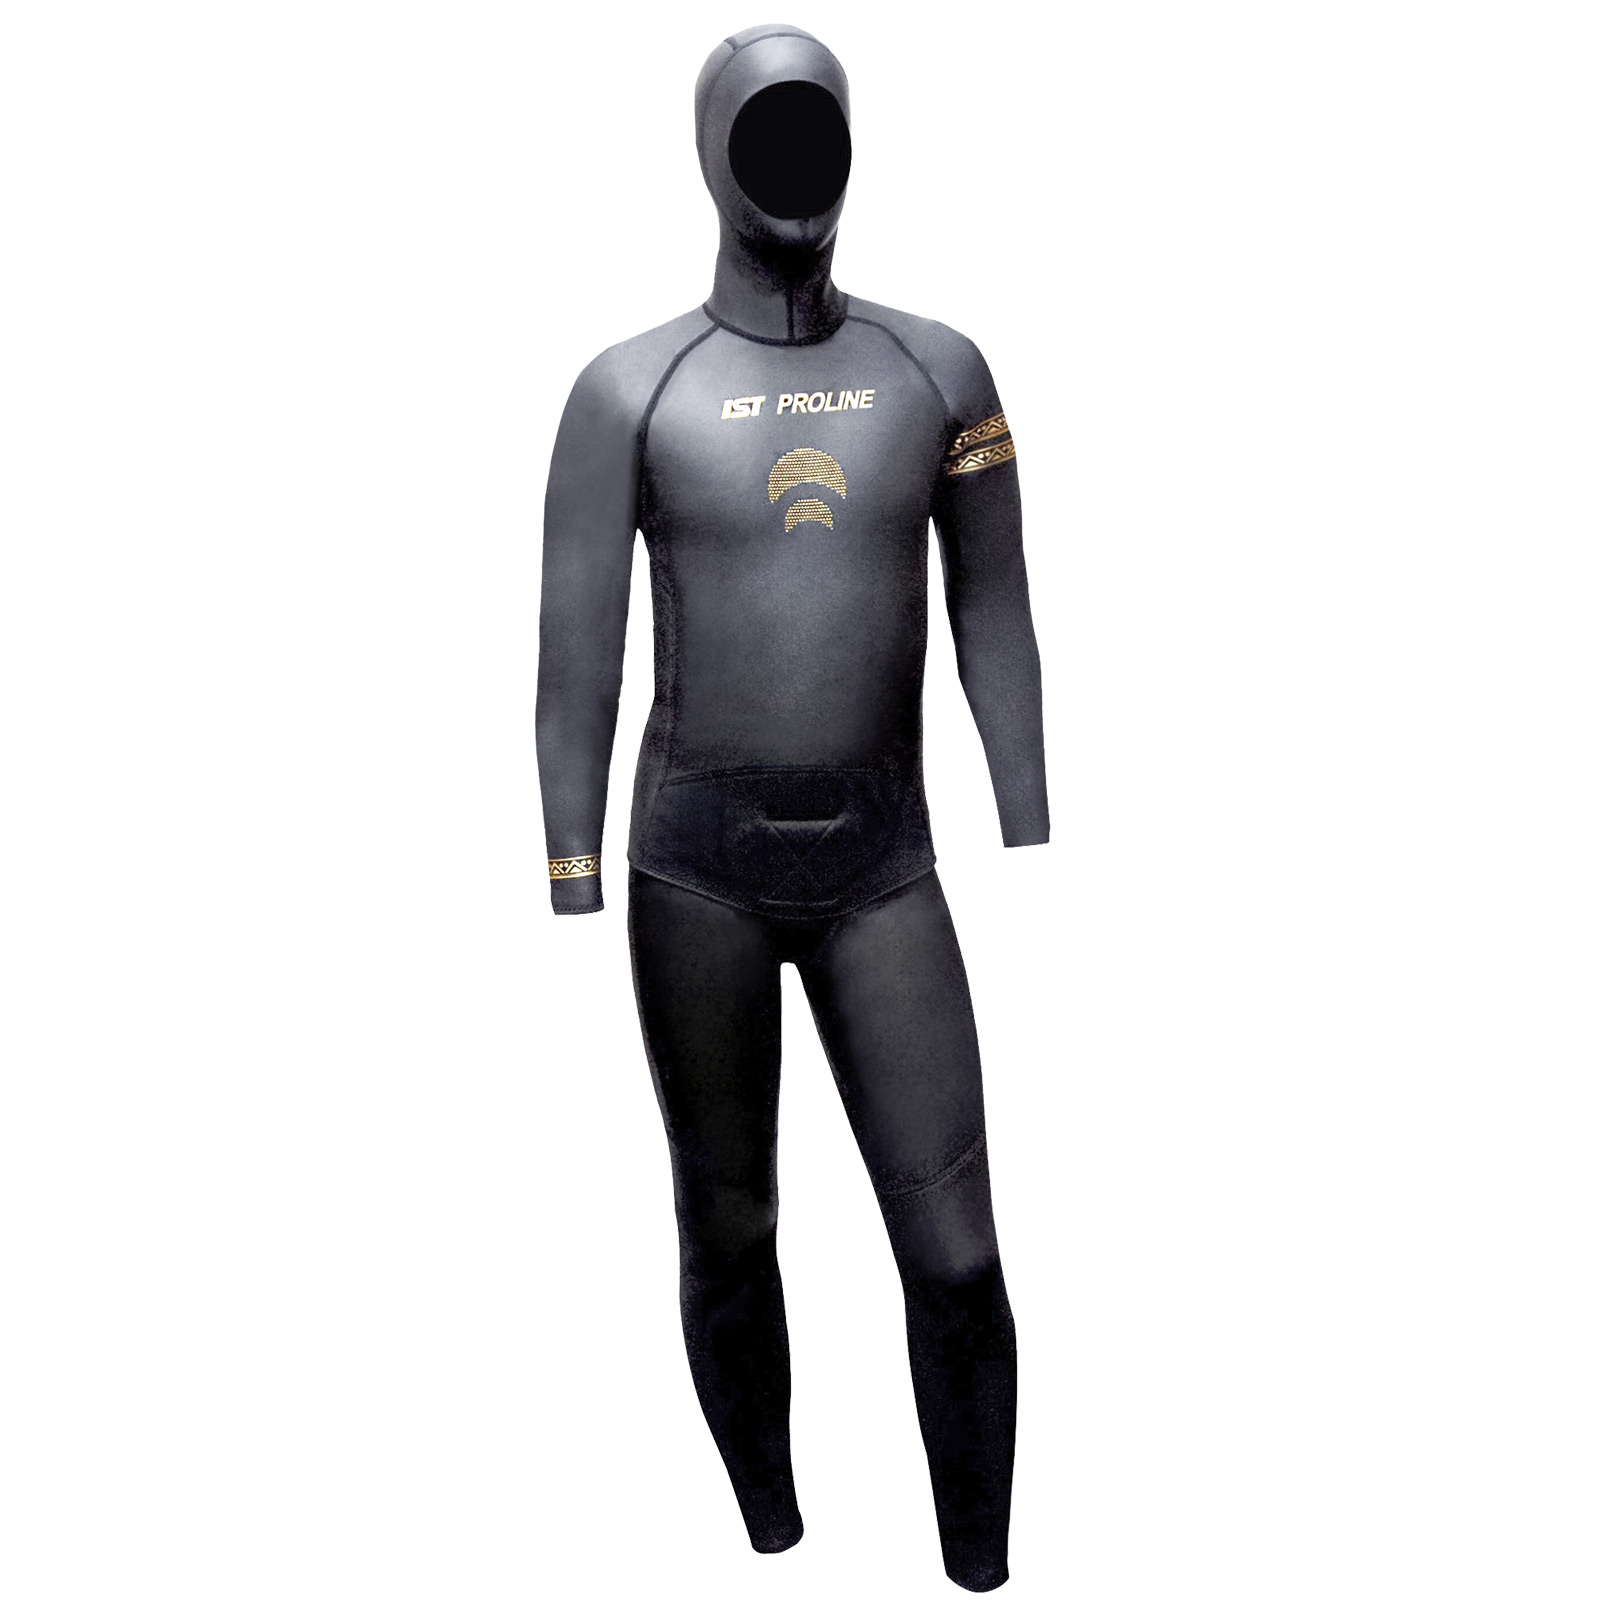 2MM 2-PIECE NEOSKIN FREEDIVING WETSUIT